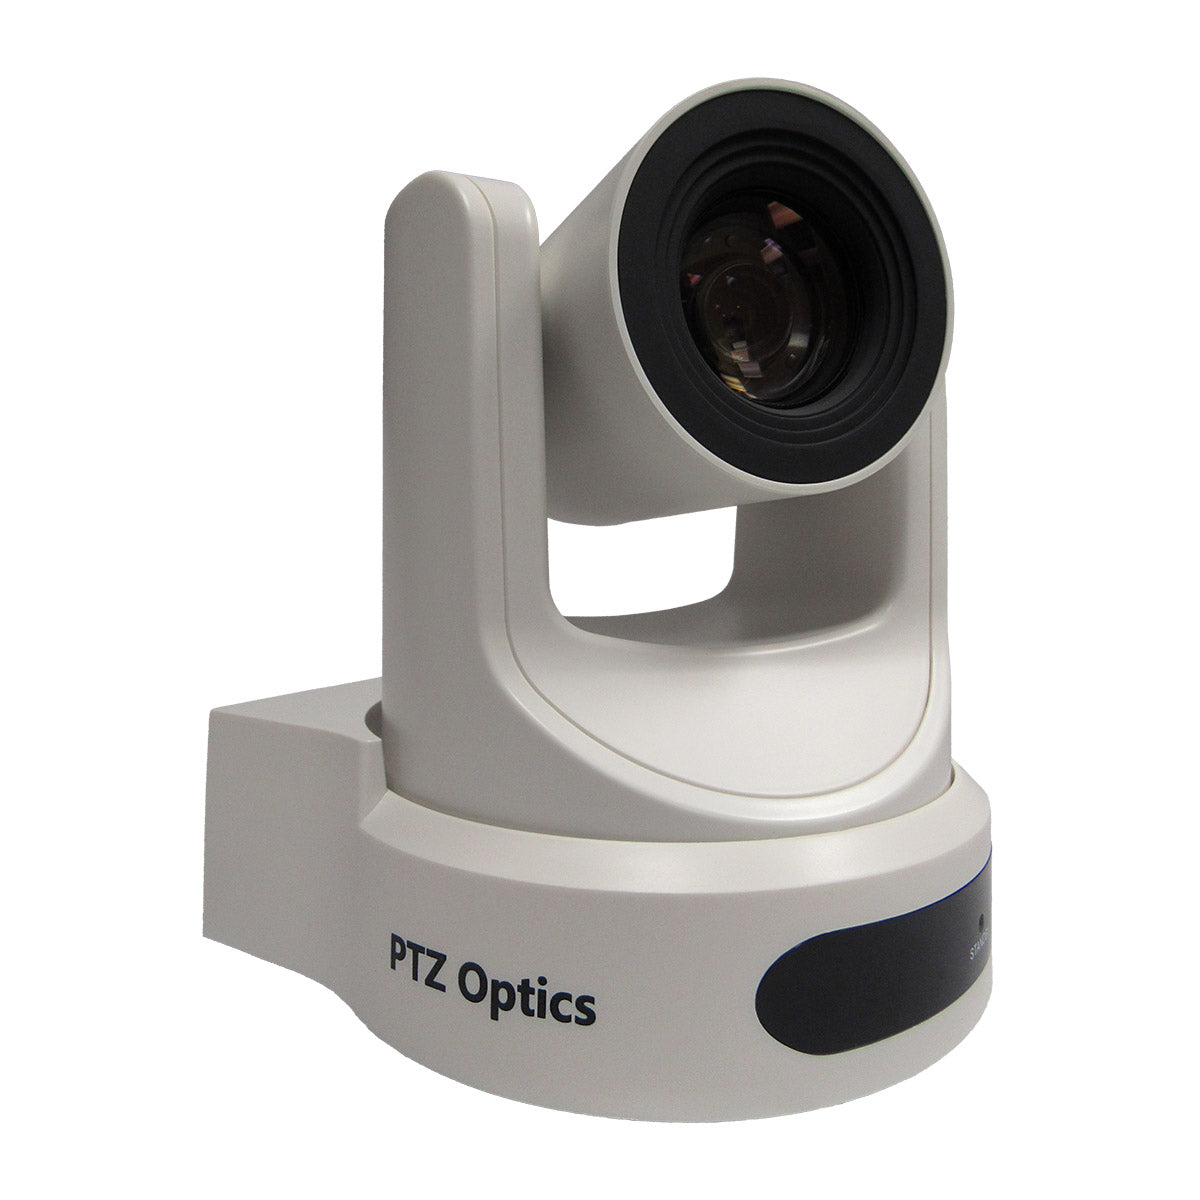 PTZ Optics PT12X USB WH G2